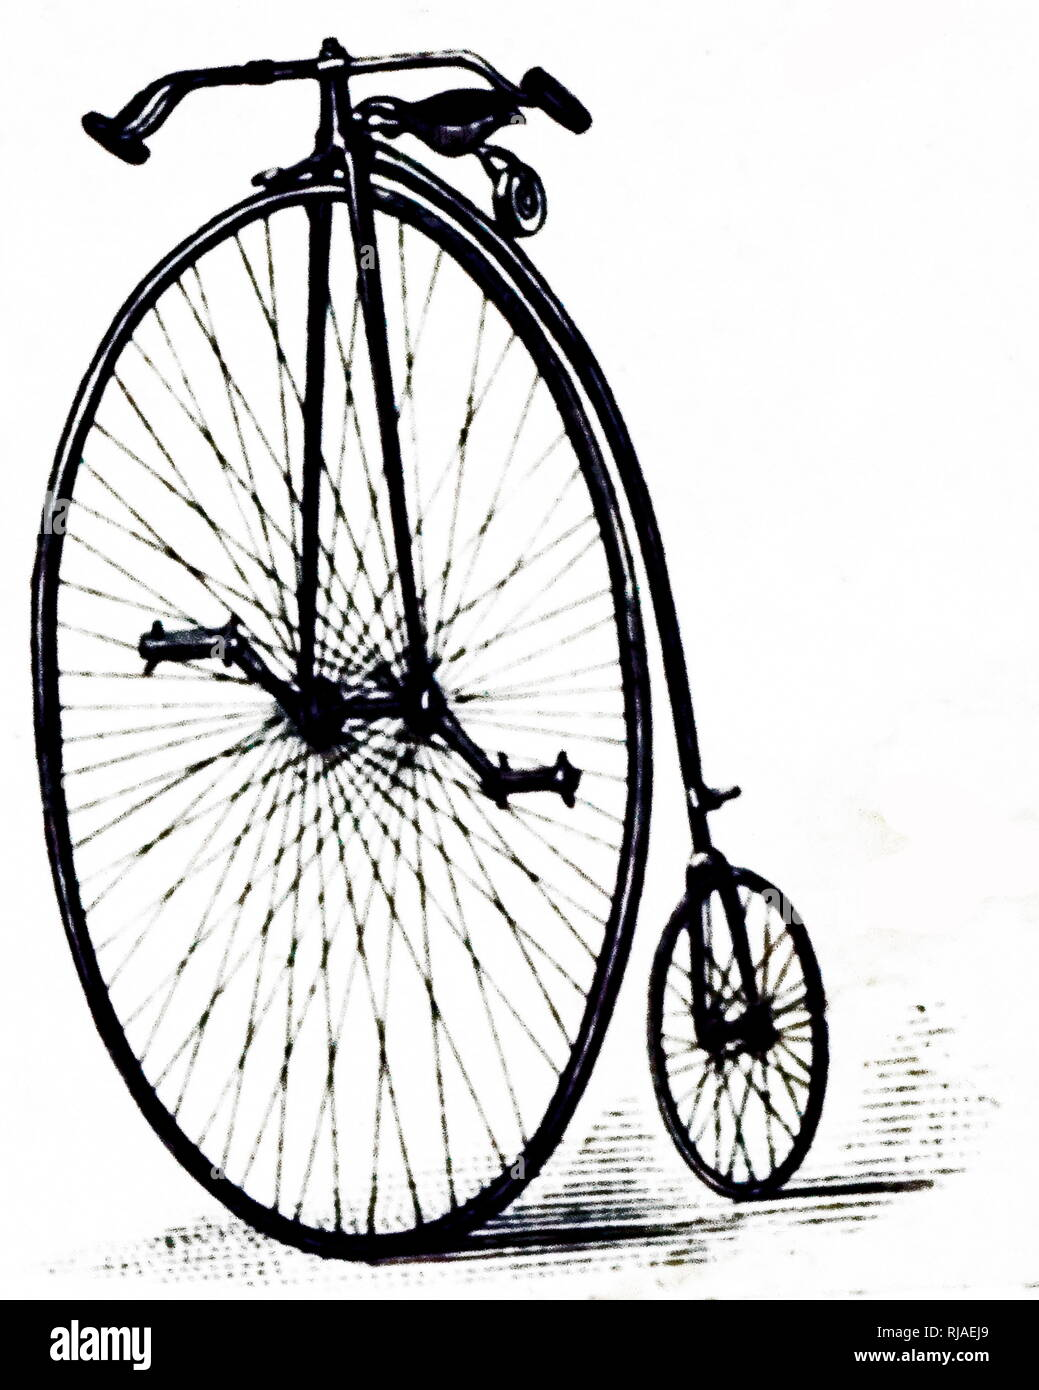 An engraving depicting the King of Clubs model of the penny-farthing. Dated 19th century - Stock Image